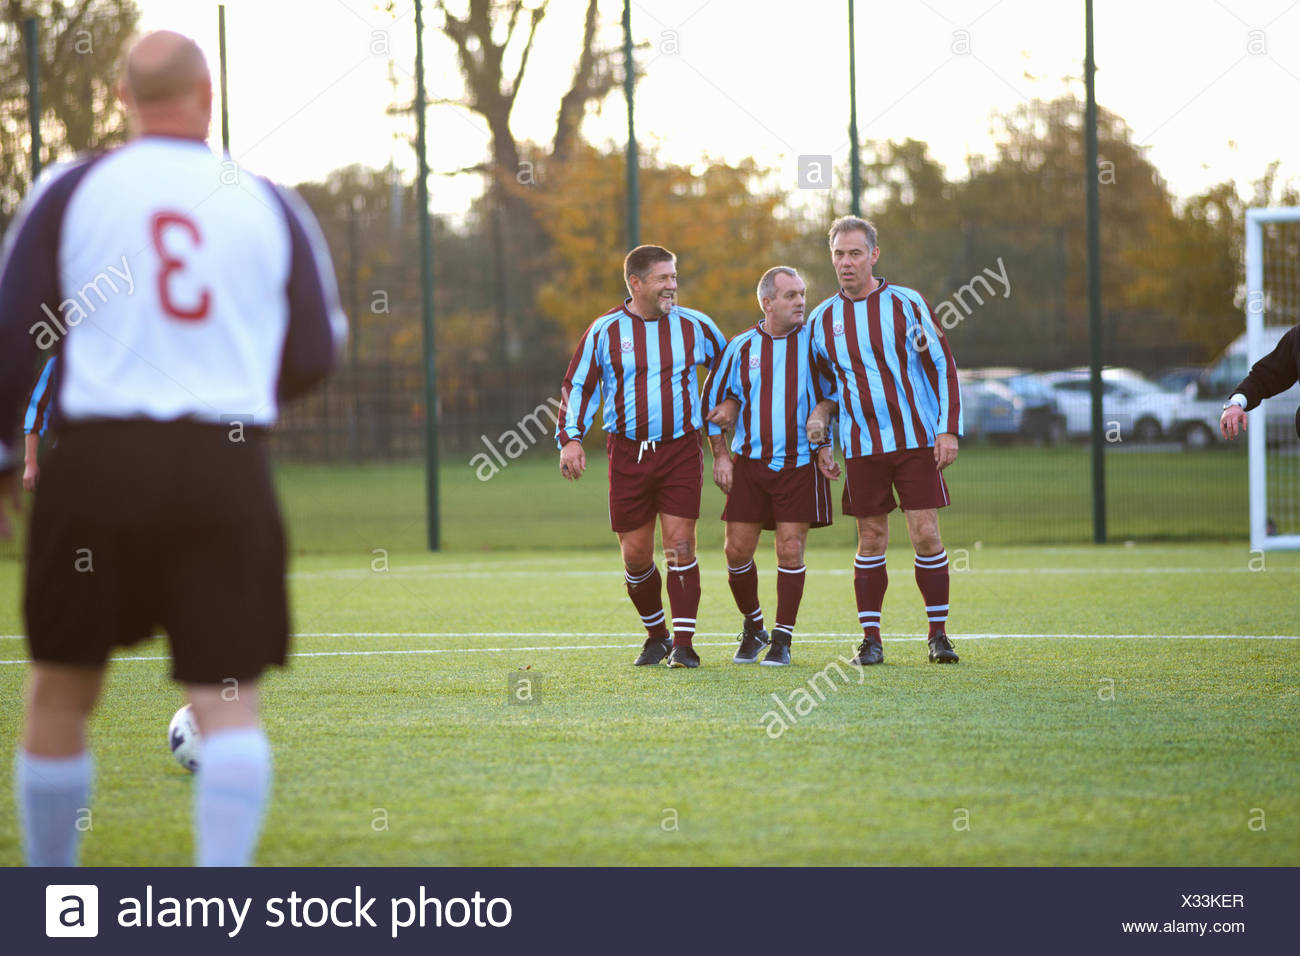 Football players forming wall to defend free kick - Stock Image